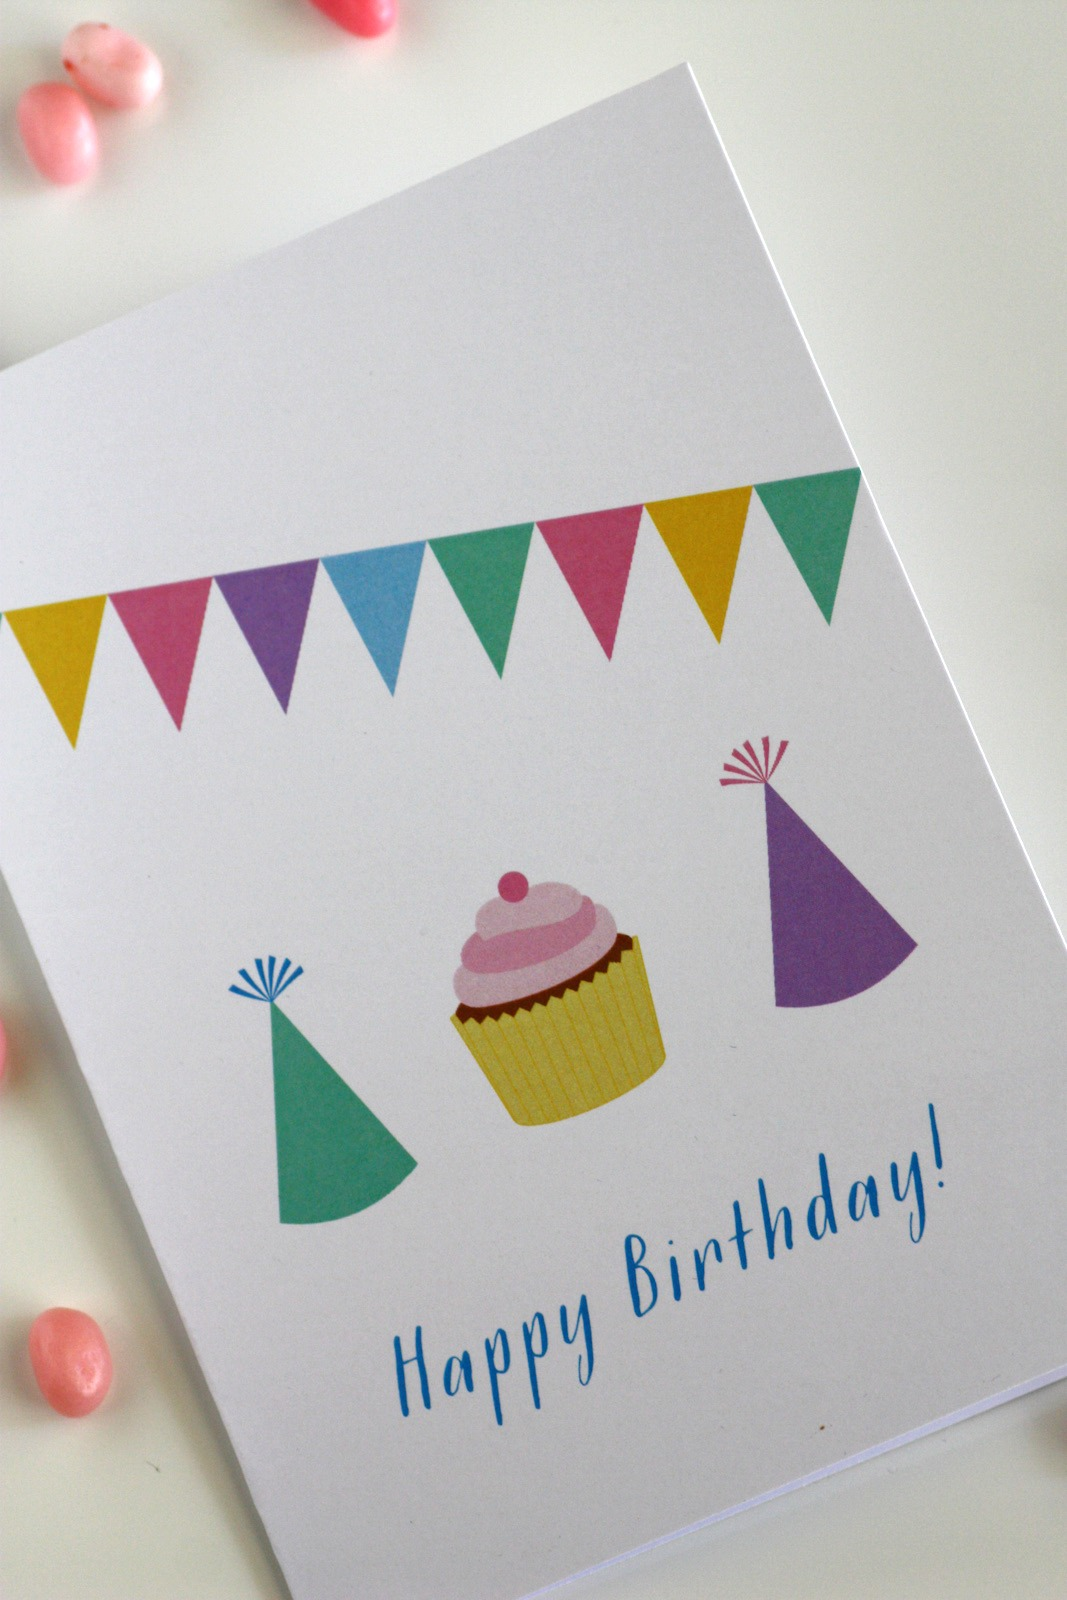 Free Printable Blank Birthday Cards – Free Printable Birthday Cards Kids